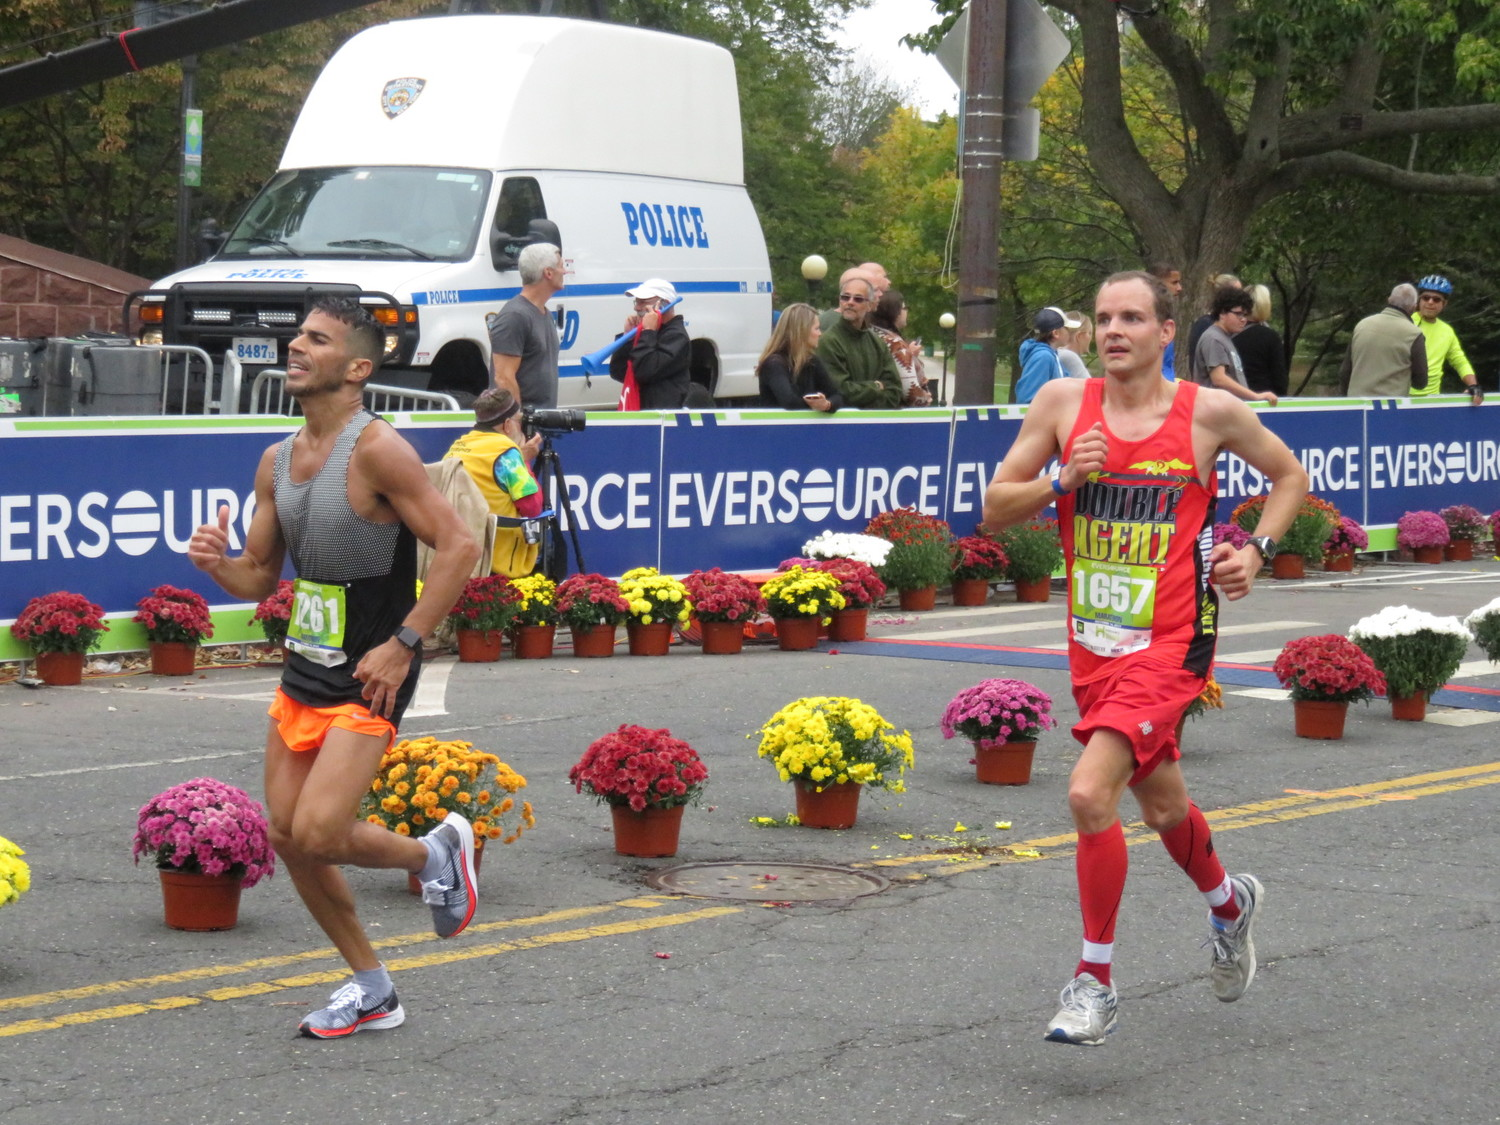 Randell Hansen, right, eyed the finish line at the Hartford Marathon on Oct. 14. Connecticut marked the 36th state in which Hansen has completed a marathon.